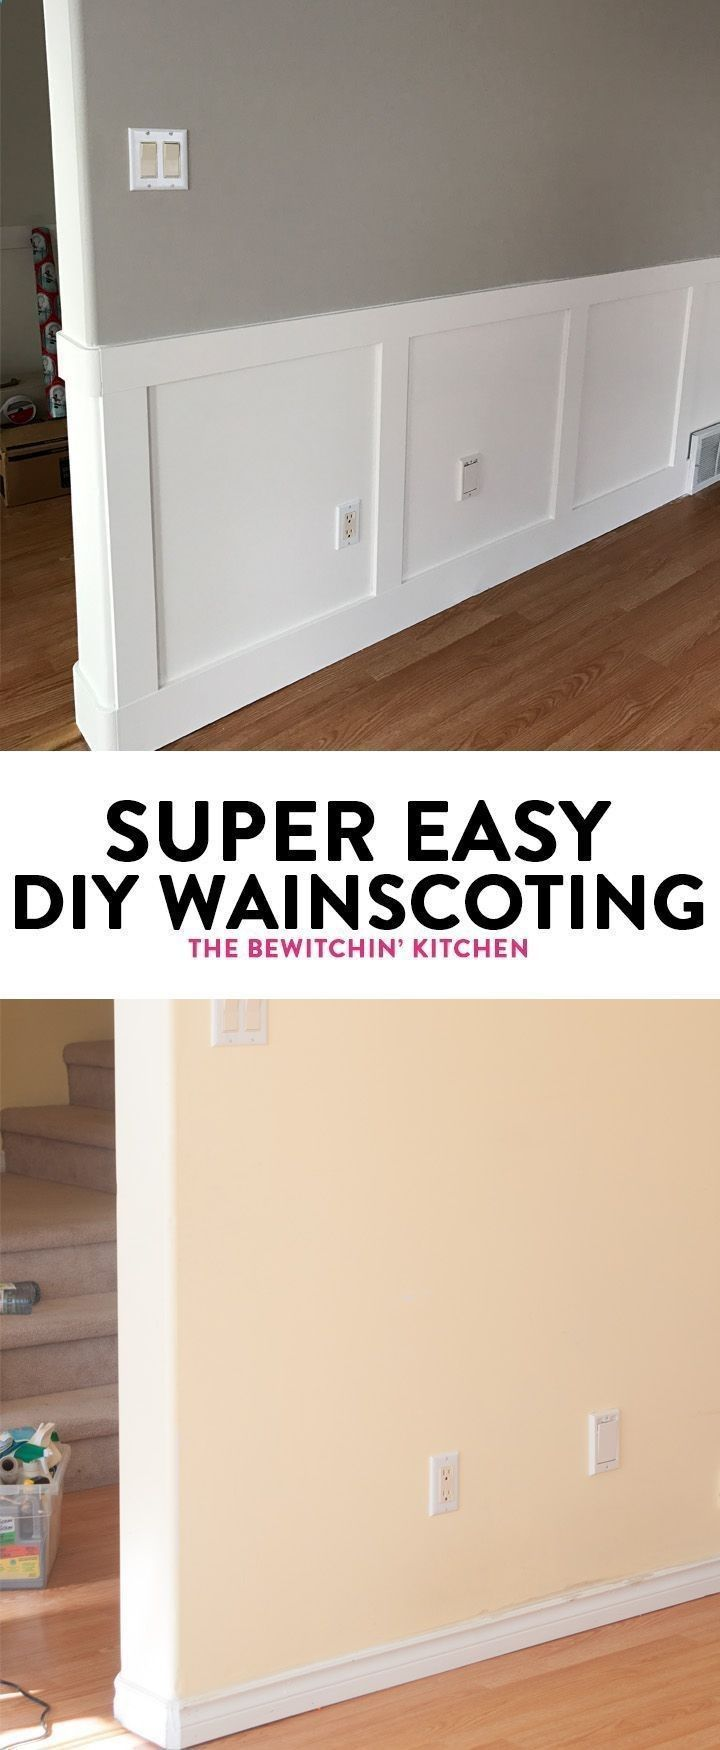 Wood Profit Woodworking Diy Wainscoting Renovation I Didnt Think Installing Wainscotting Would Be So Easy Diy Wainscoting Installing Wainscoting Home Diy